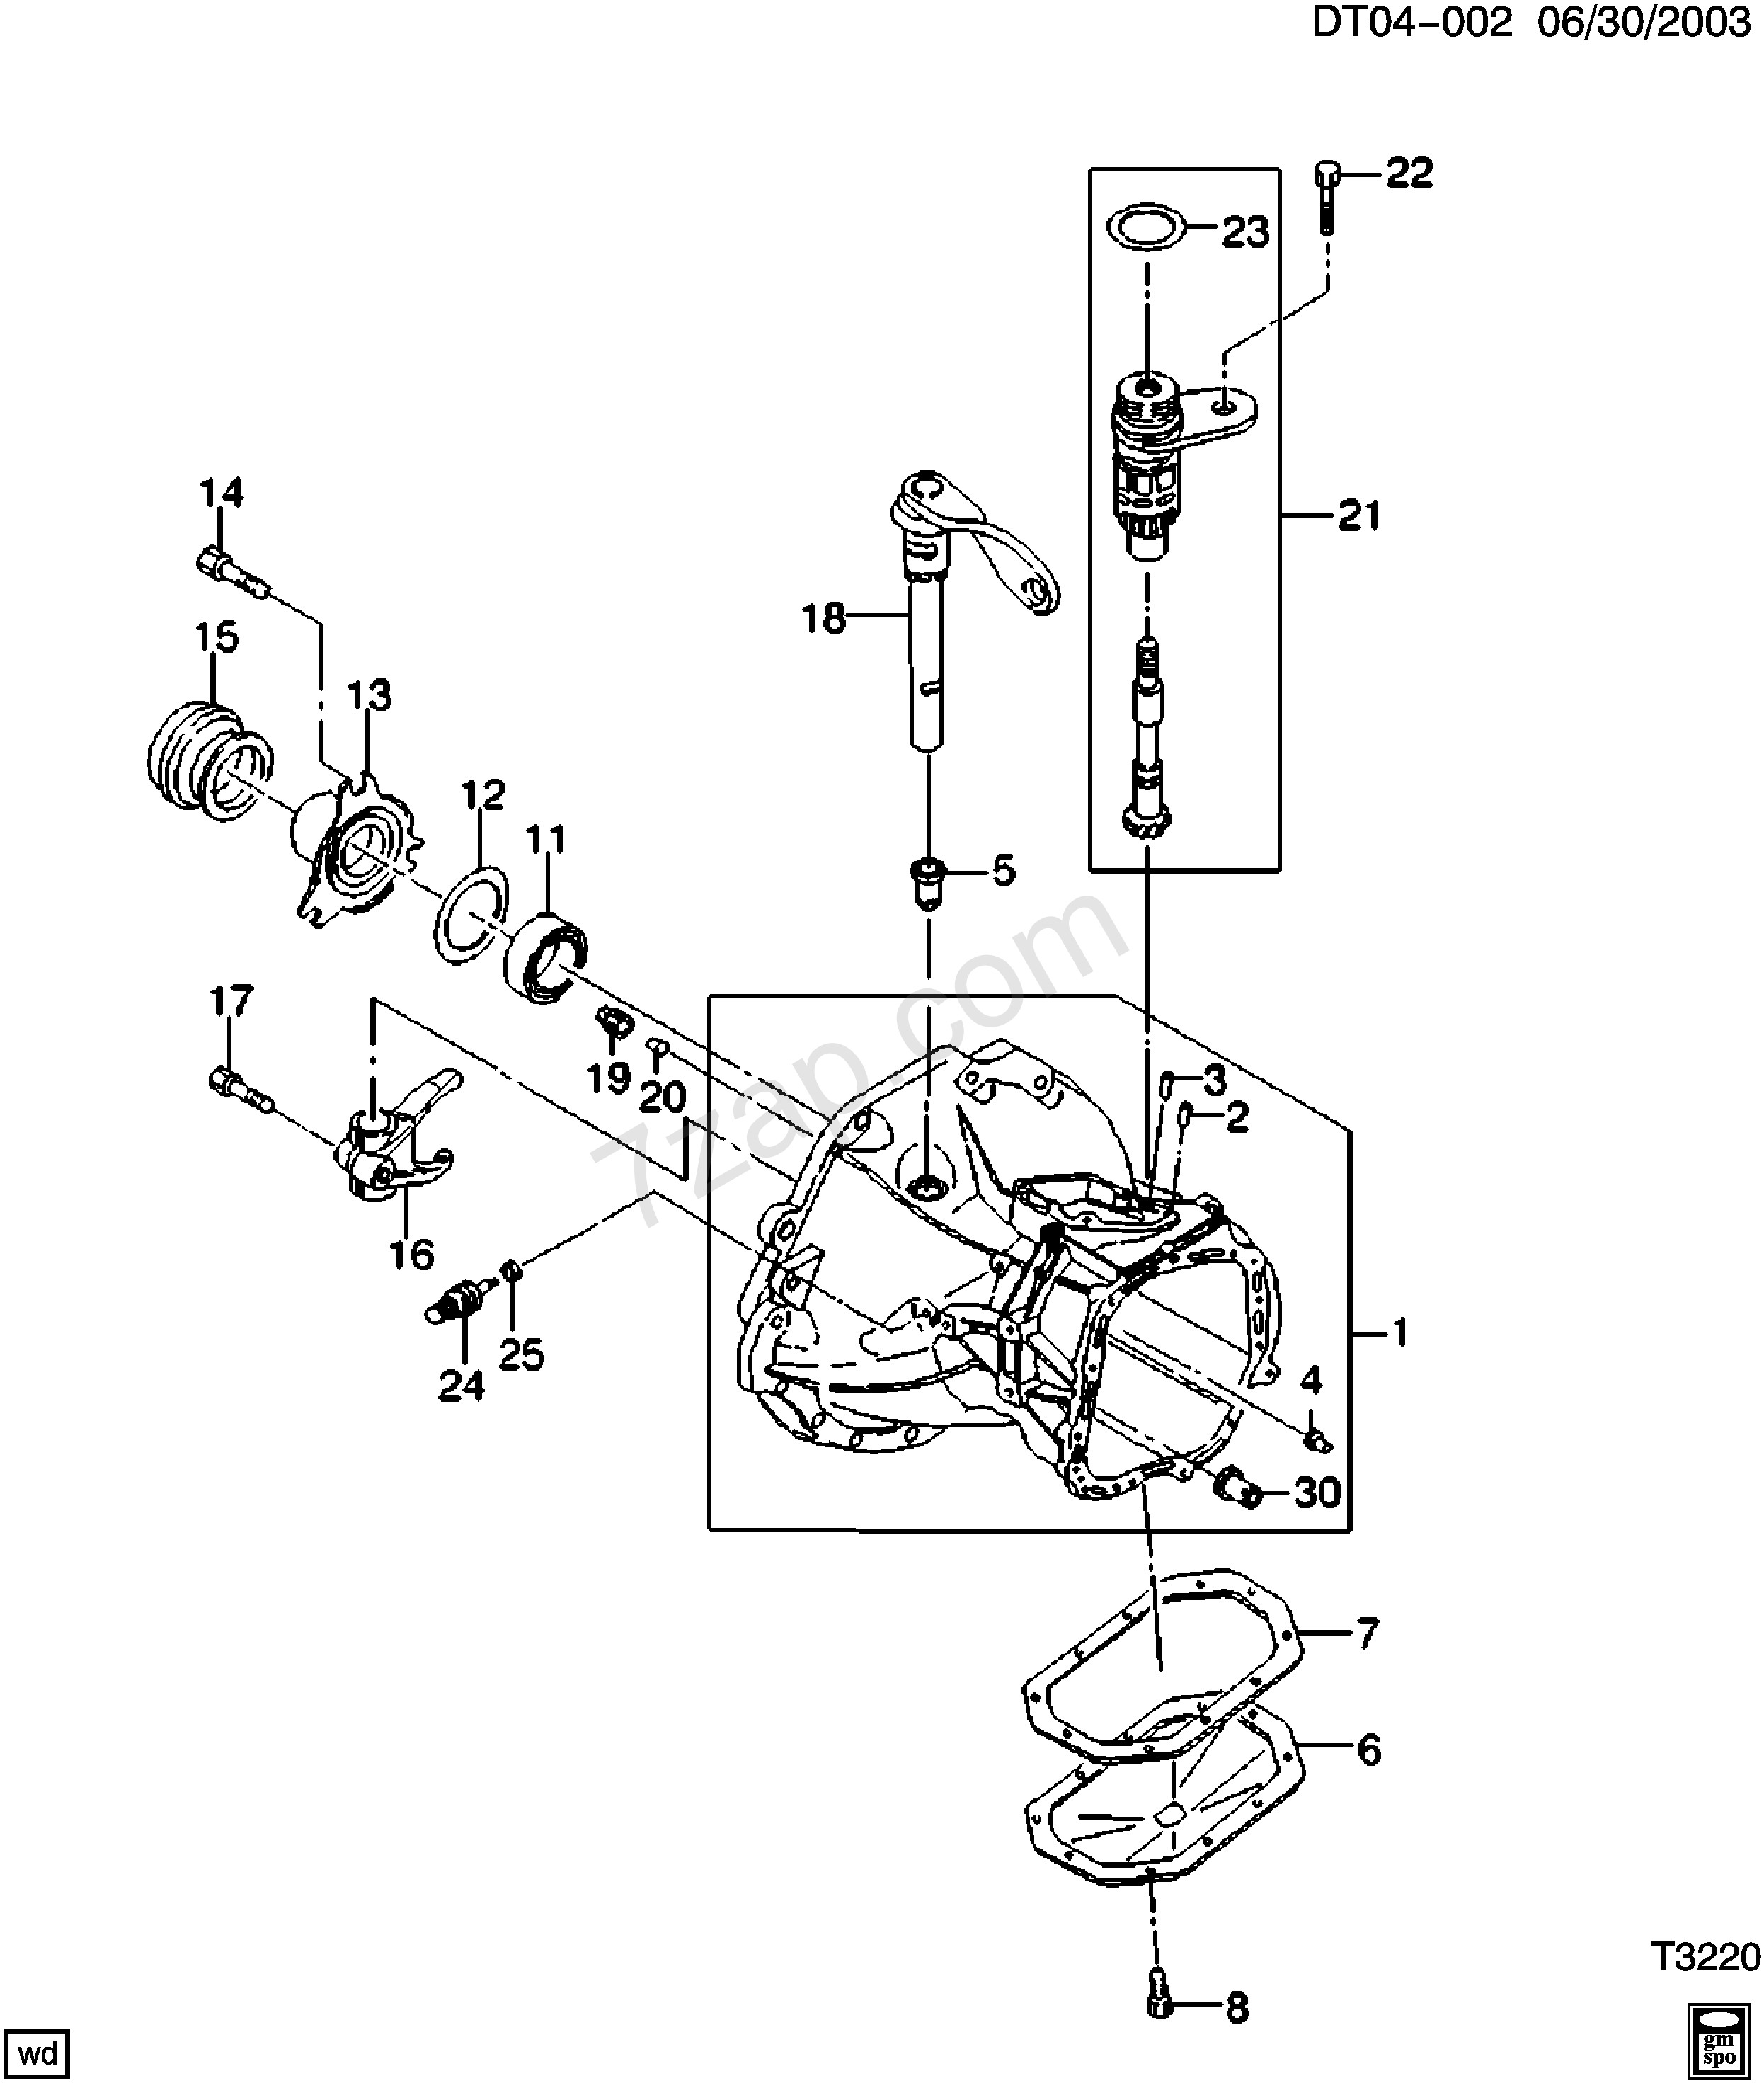 Mtd 14aj825p000 1998 Parts Diagram For Drive Pedal Manual Guide